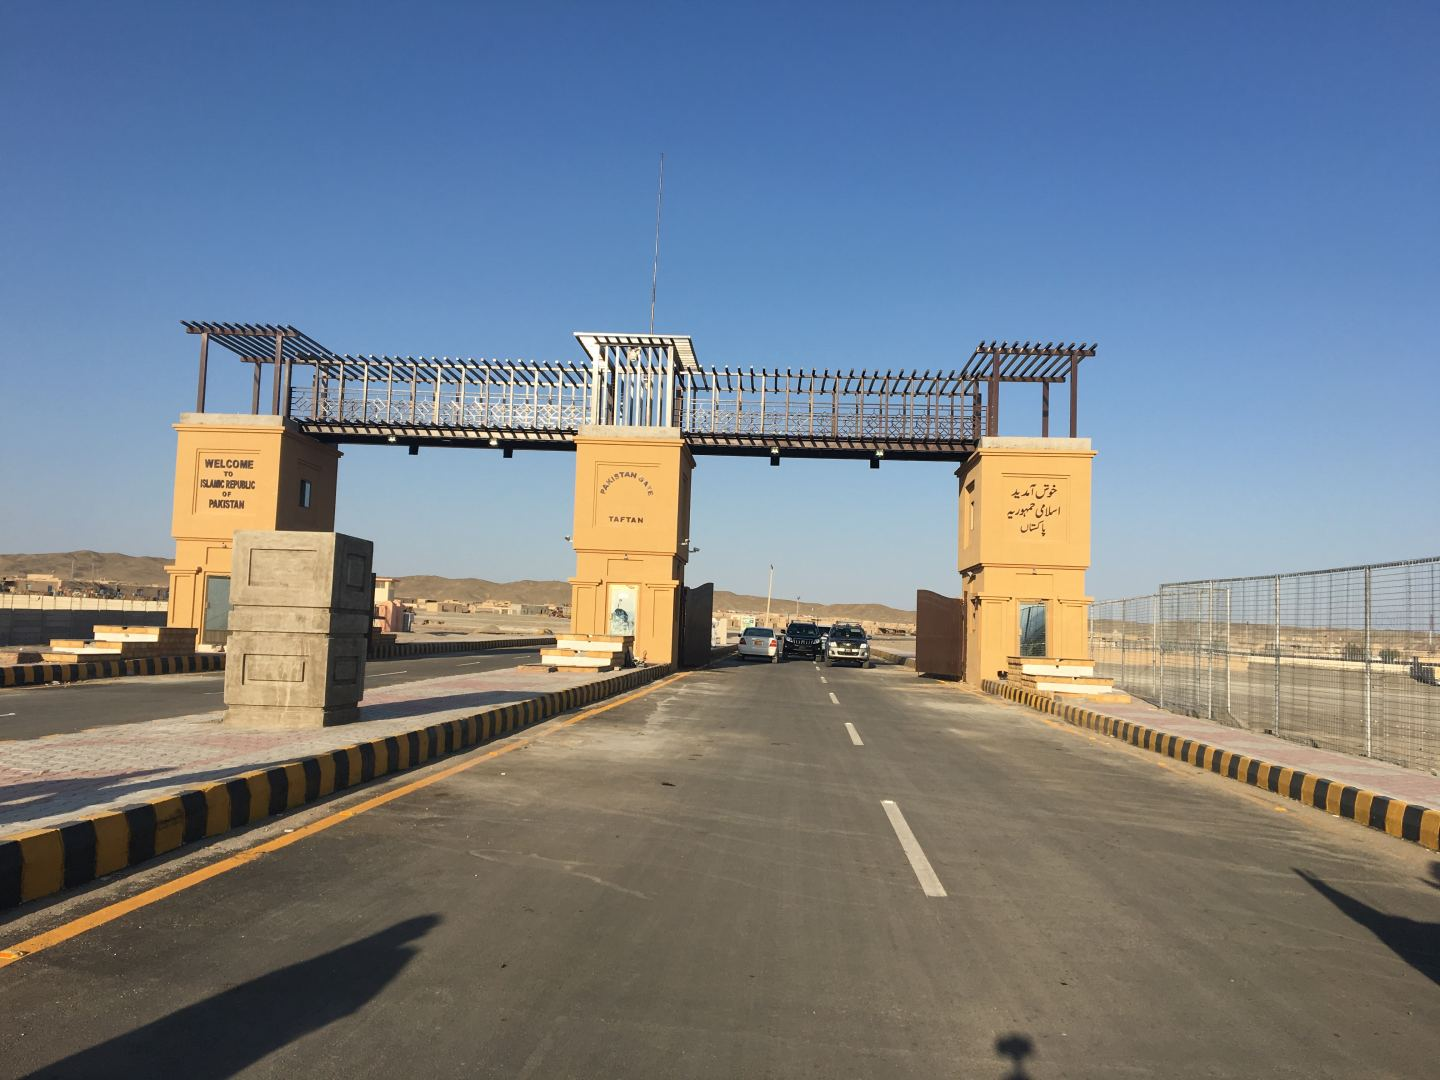 More joint border crossings could boost Iran-Pakistan trade ties - Chamber of Commerce